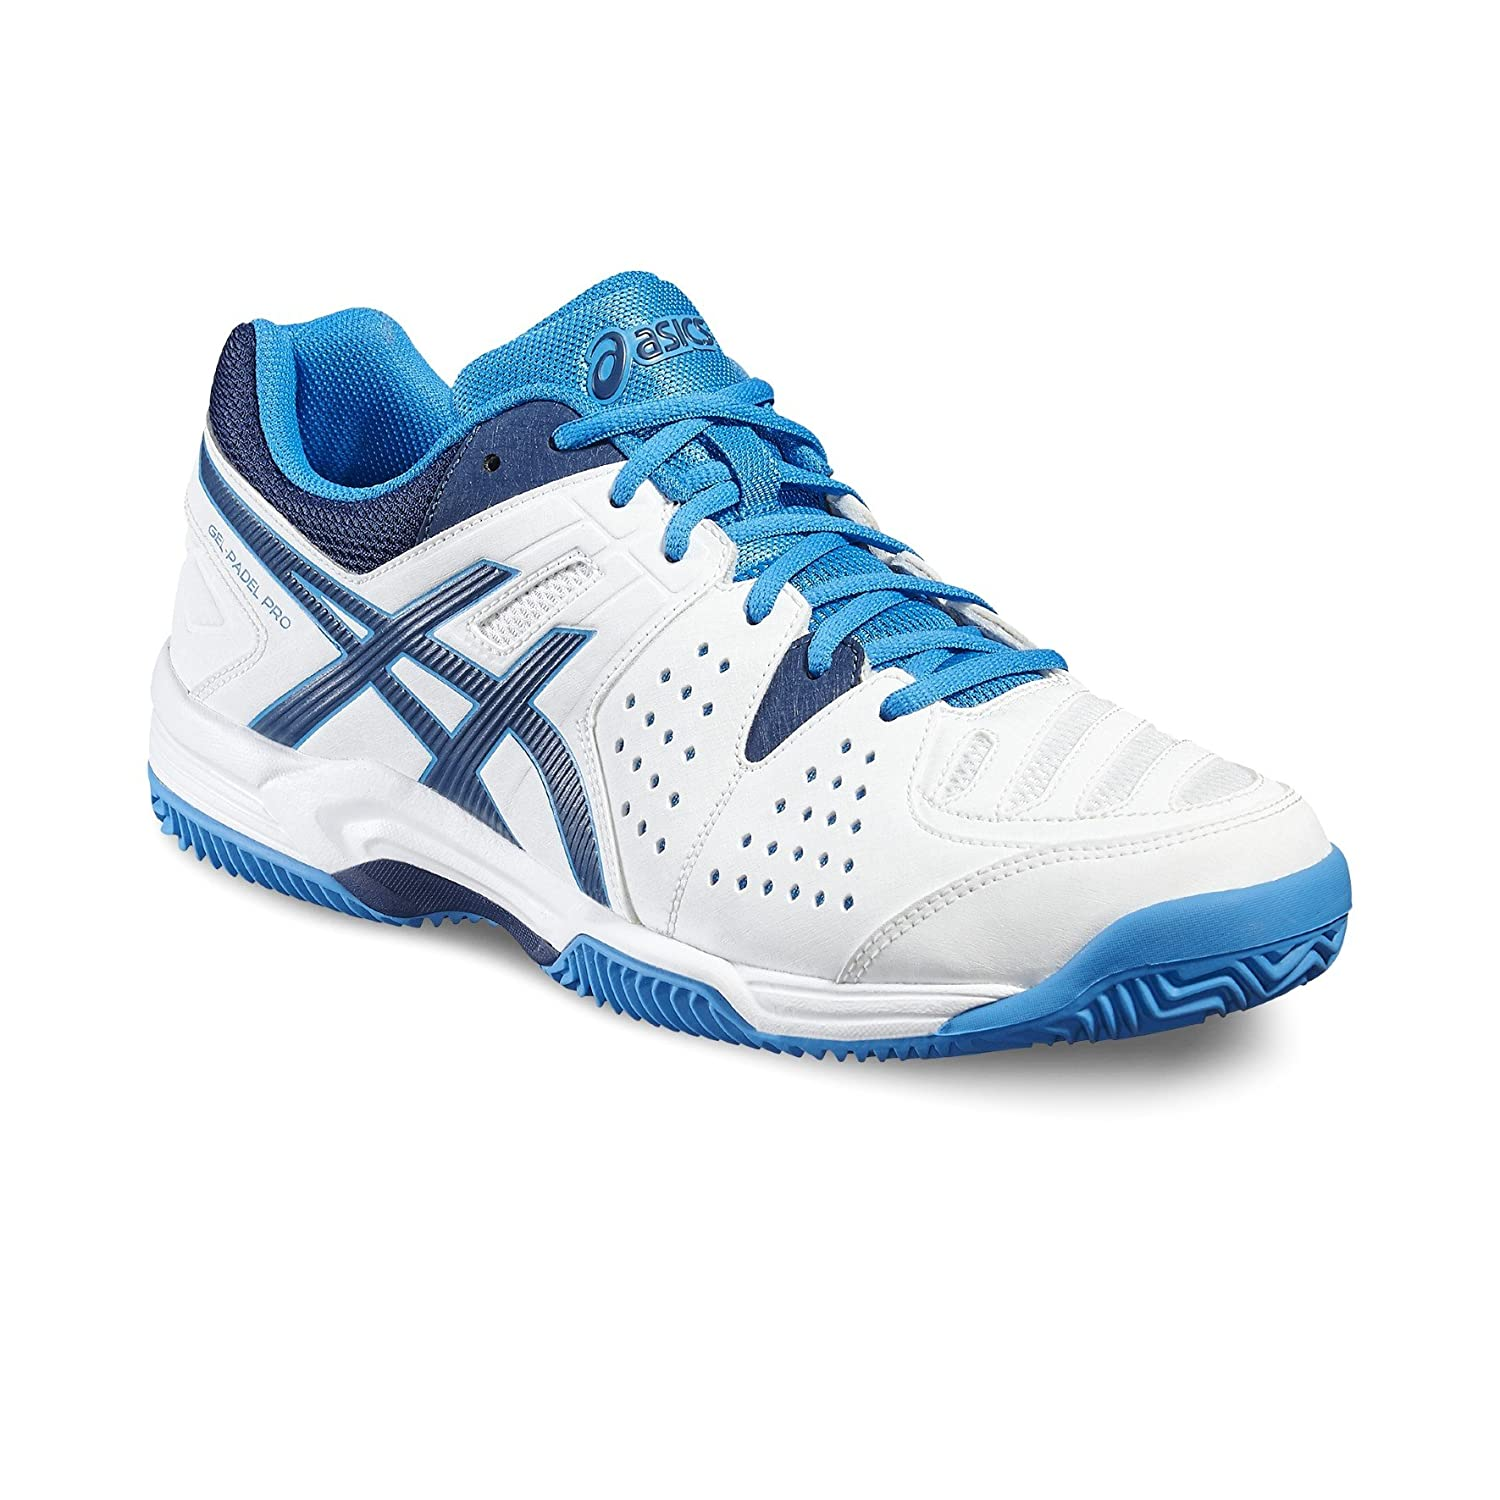 1a0def373d ASICS - GEL PADEL PRO 3 GS, White, Size UK-9.5: Amazon.co.uk: Sports ...